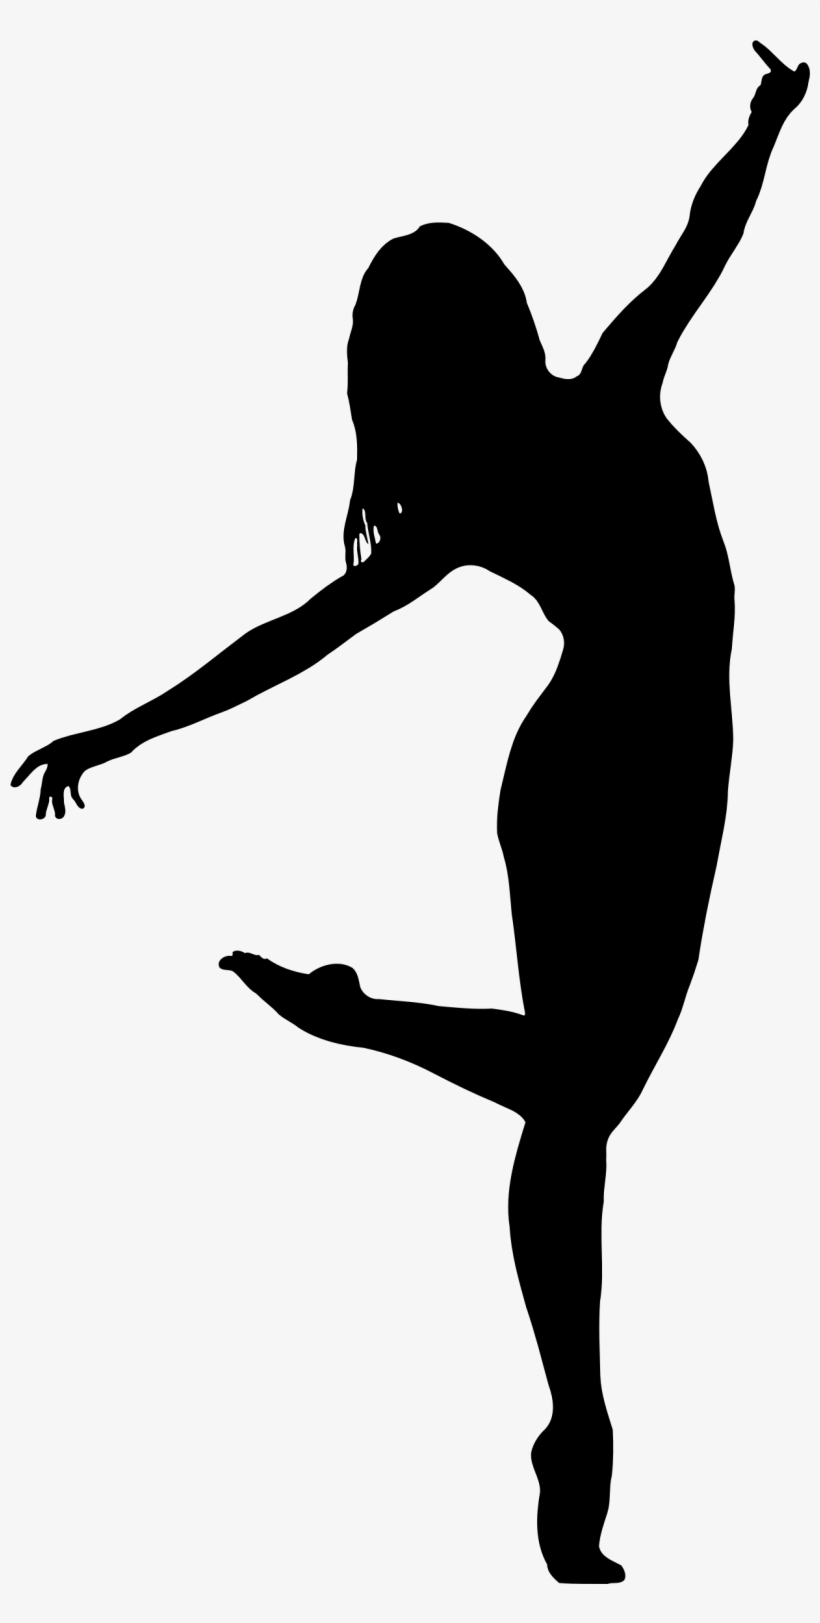 dancing girl silhouette dance silhouette png 20 free cliparts download images on silhouette girl dancing 1 1